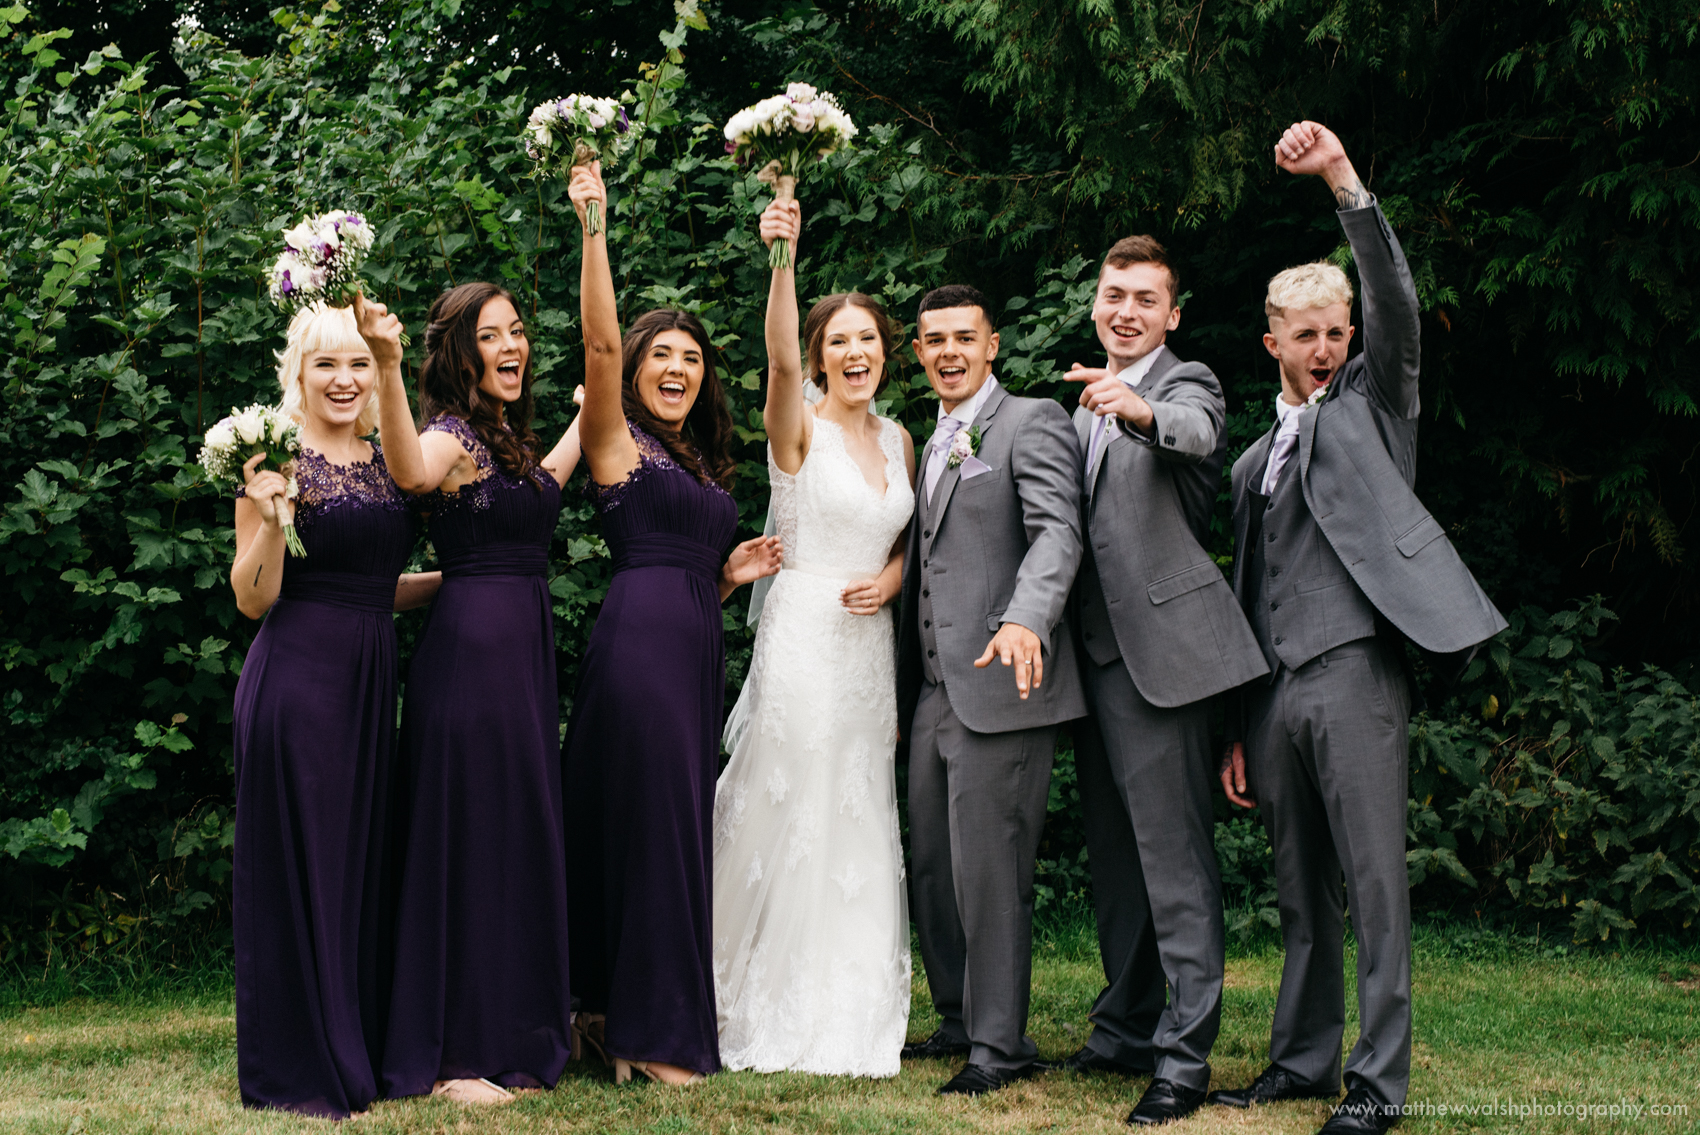 The bridesmaids and groomsmen share a more relaxed photograph together as they celebrate the happy couple